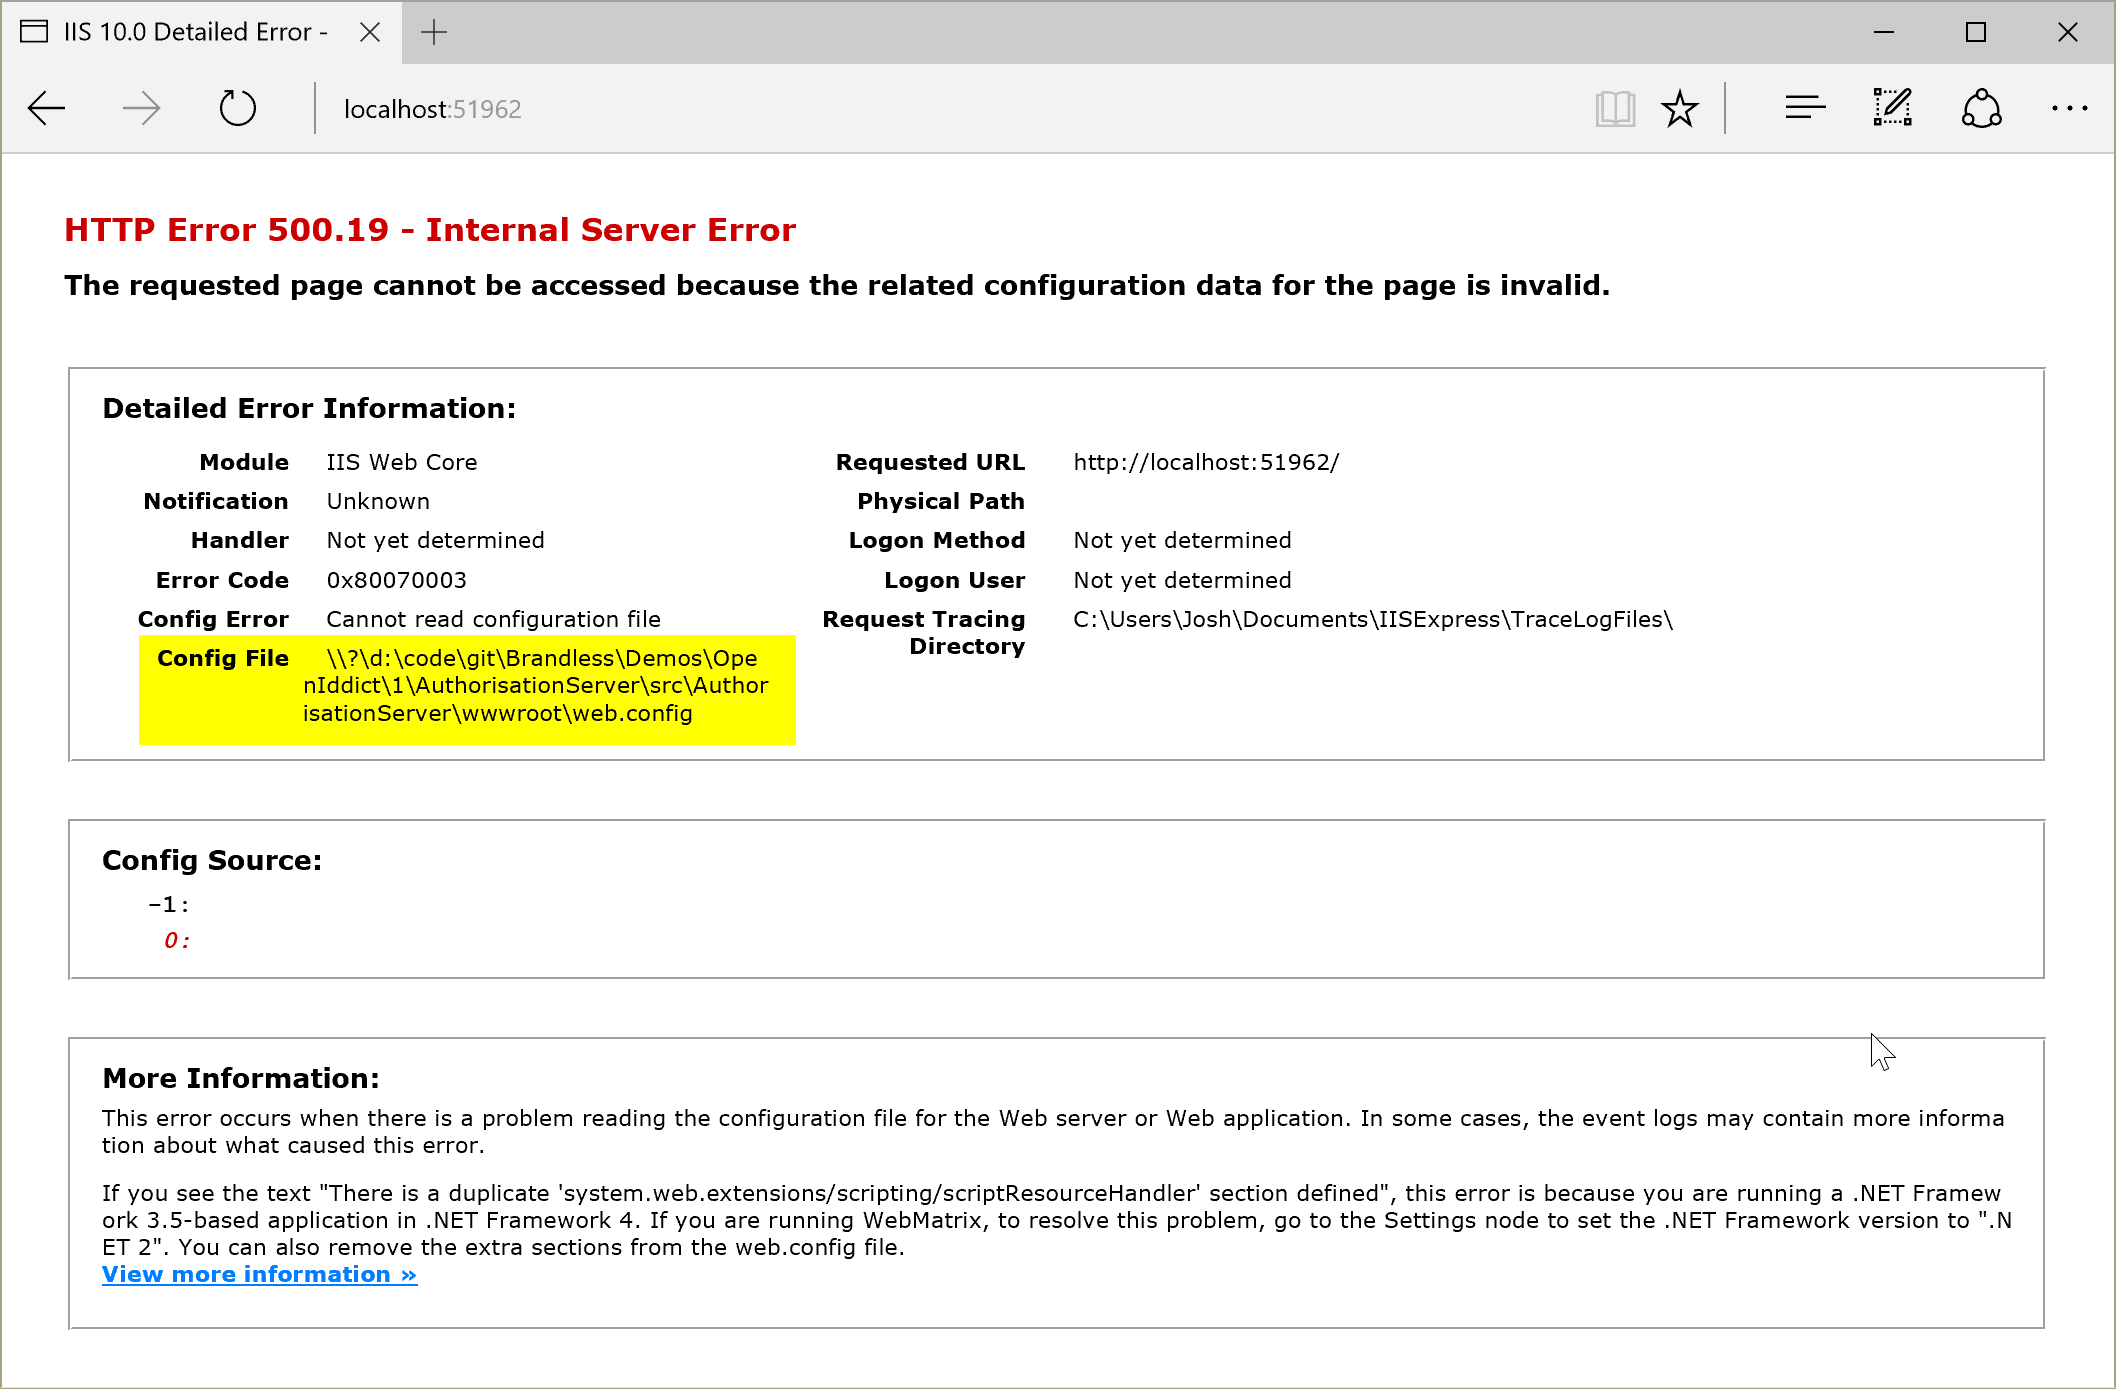 2015-12-21 11_42_42-IIS 10.0 Detailed Error - 500.19 - Internal Server Error - Microsoft Edge.png